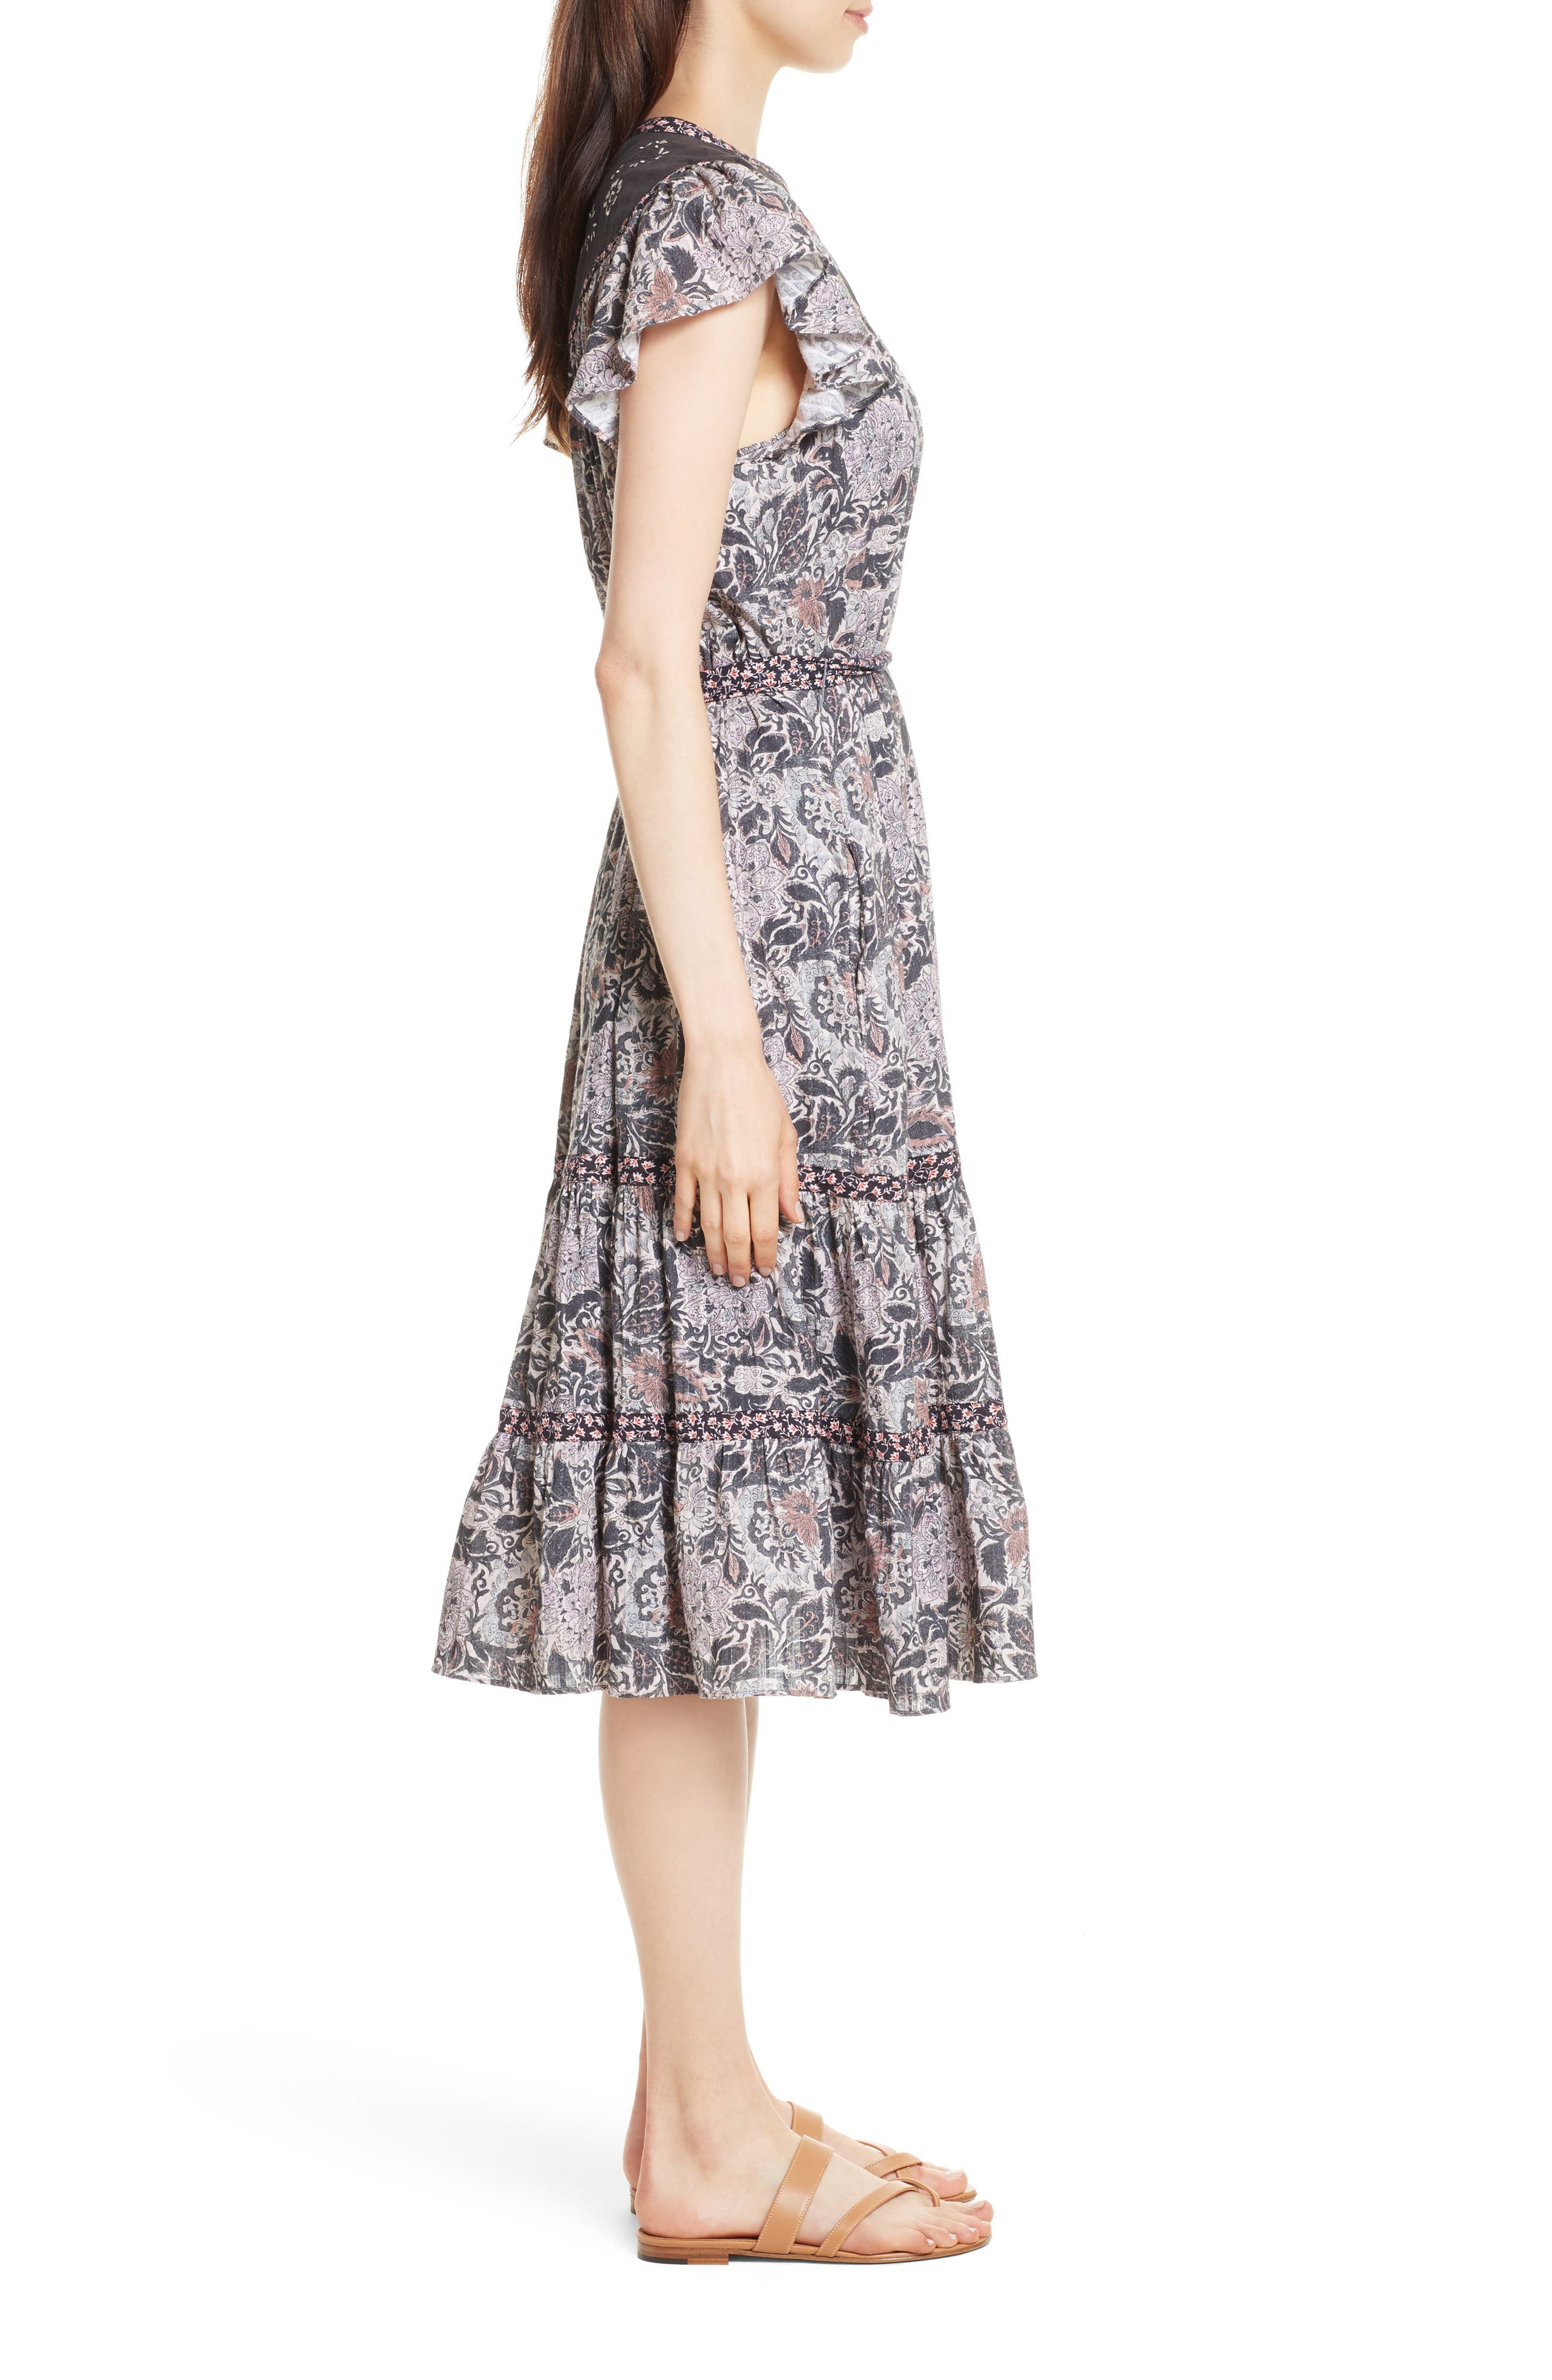 Indochine Embroidered Floral Dress,                             Alternate thumbnail 3, color,                             017